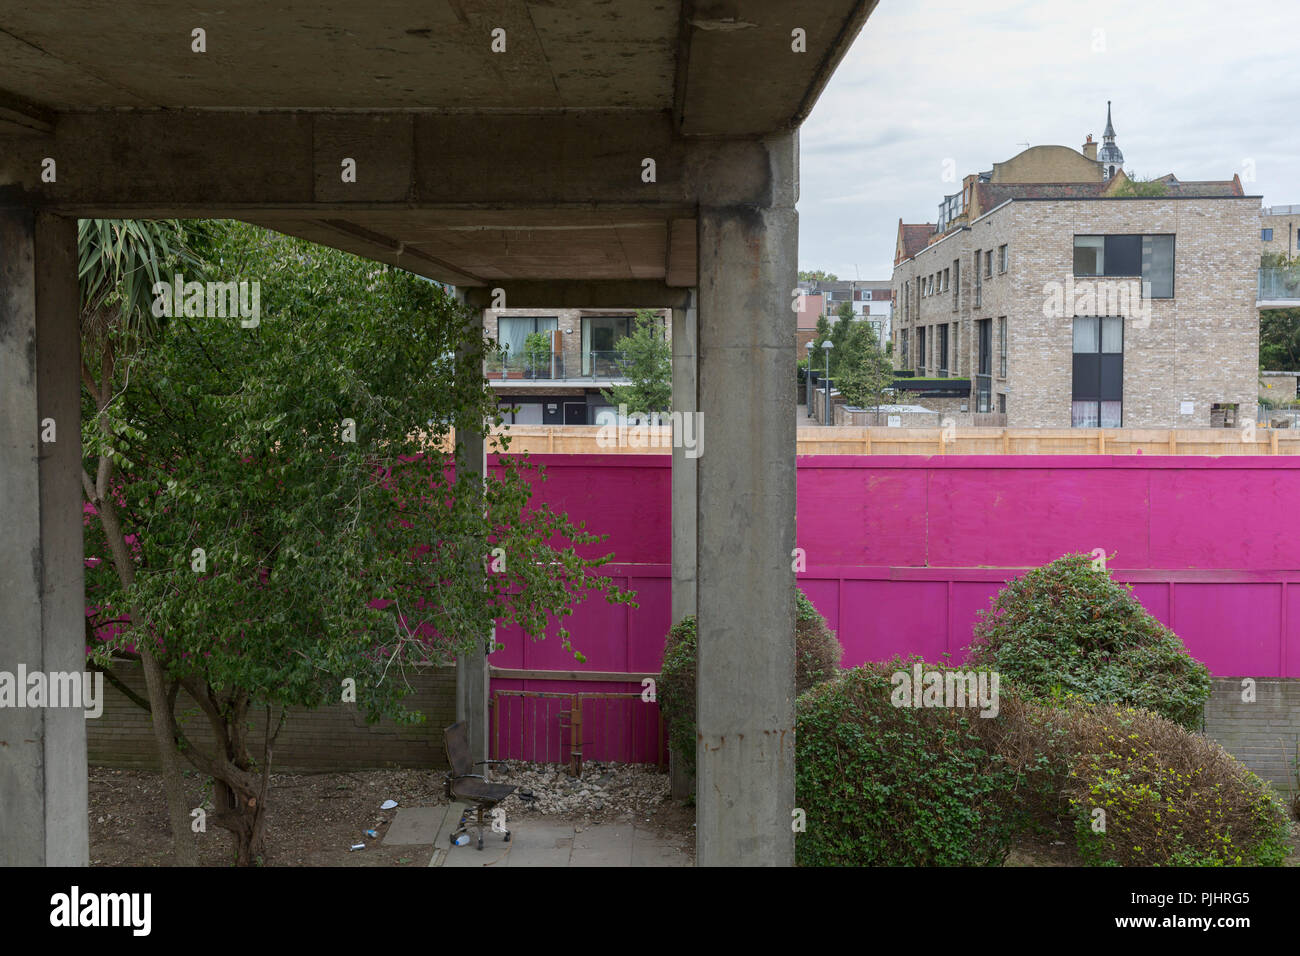 """An urban landscape on the soon-to-be demolished Aylesbury Estate, on 4th September 2018, in Southwark, London, England. The Aylesbury Estate contained 2,704 dwellings in approximately 7500 residents and built between 1963 and 1977 and for decades it was seen as a symbol of the failure of British social housing. There were major problems with the physical buildings on the estate and the poor perception of estates in Britain as a whole have led to the Aylesbury Estate gaining the title of """"one of the most notorious estates in the United Kingdom. Demolition is in progress for the regeneration of  Stock Photo"""